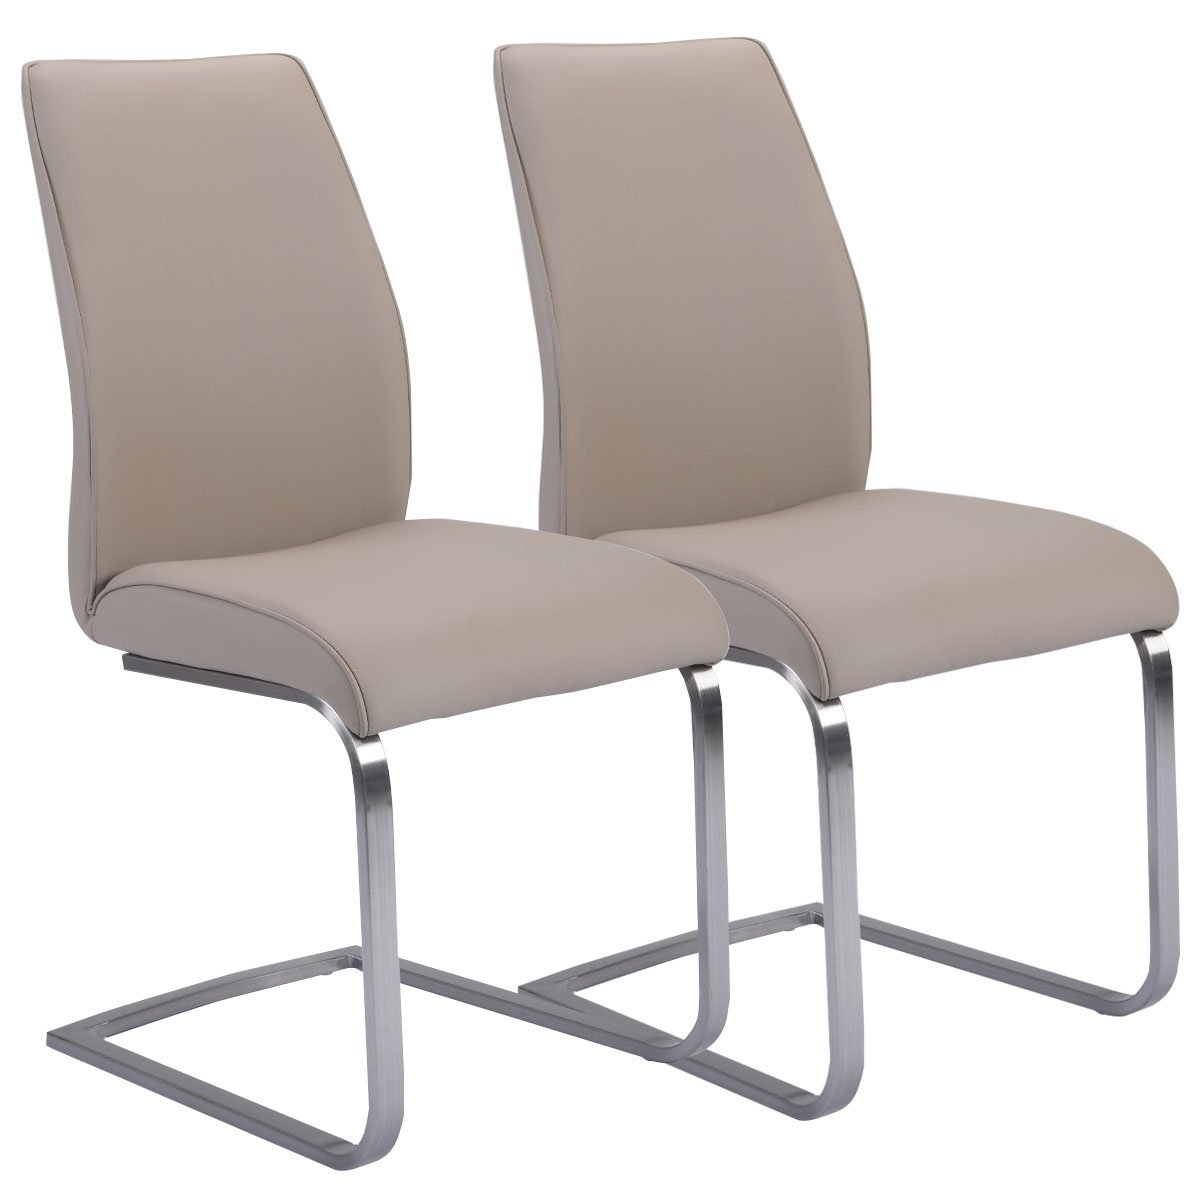 Modern Leather Dining Chairs: Amazon.com